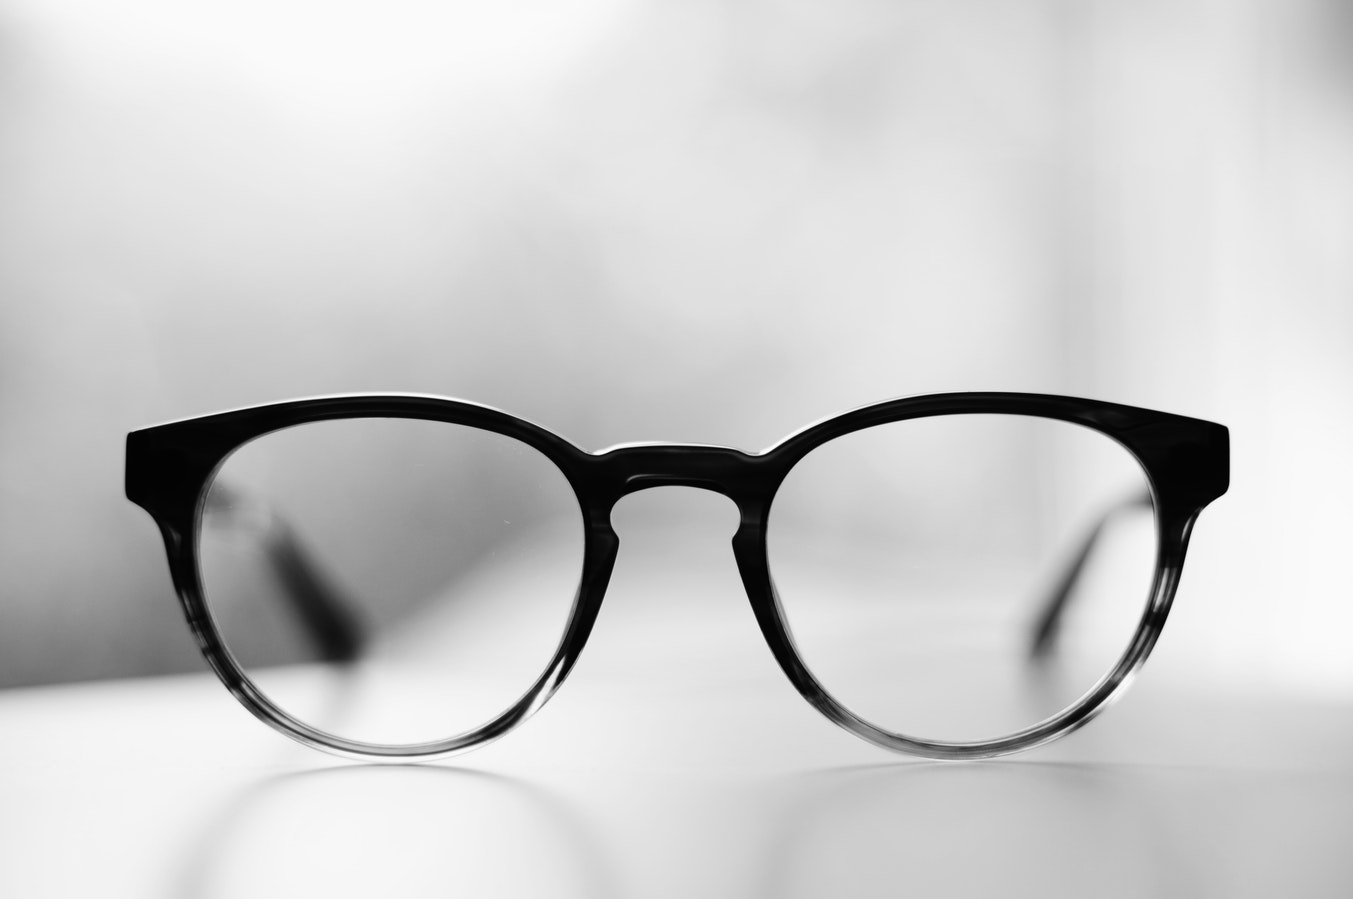 A pair of glasses. Cataracts are one of the 10 common senior health issues